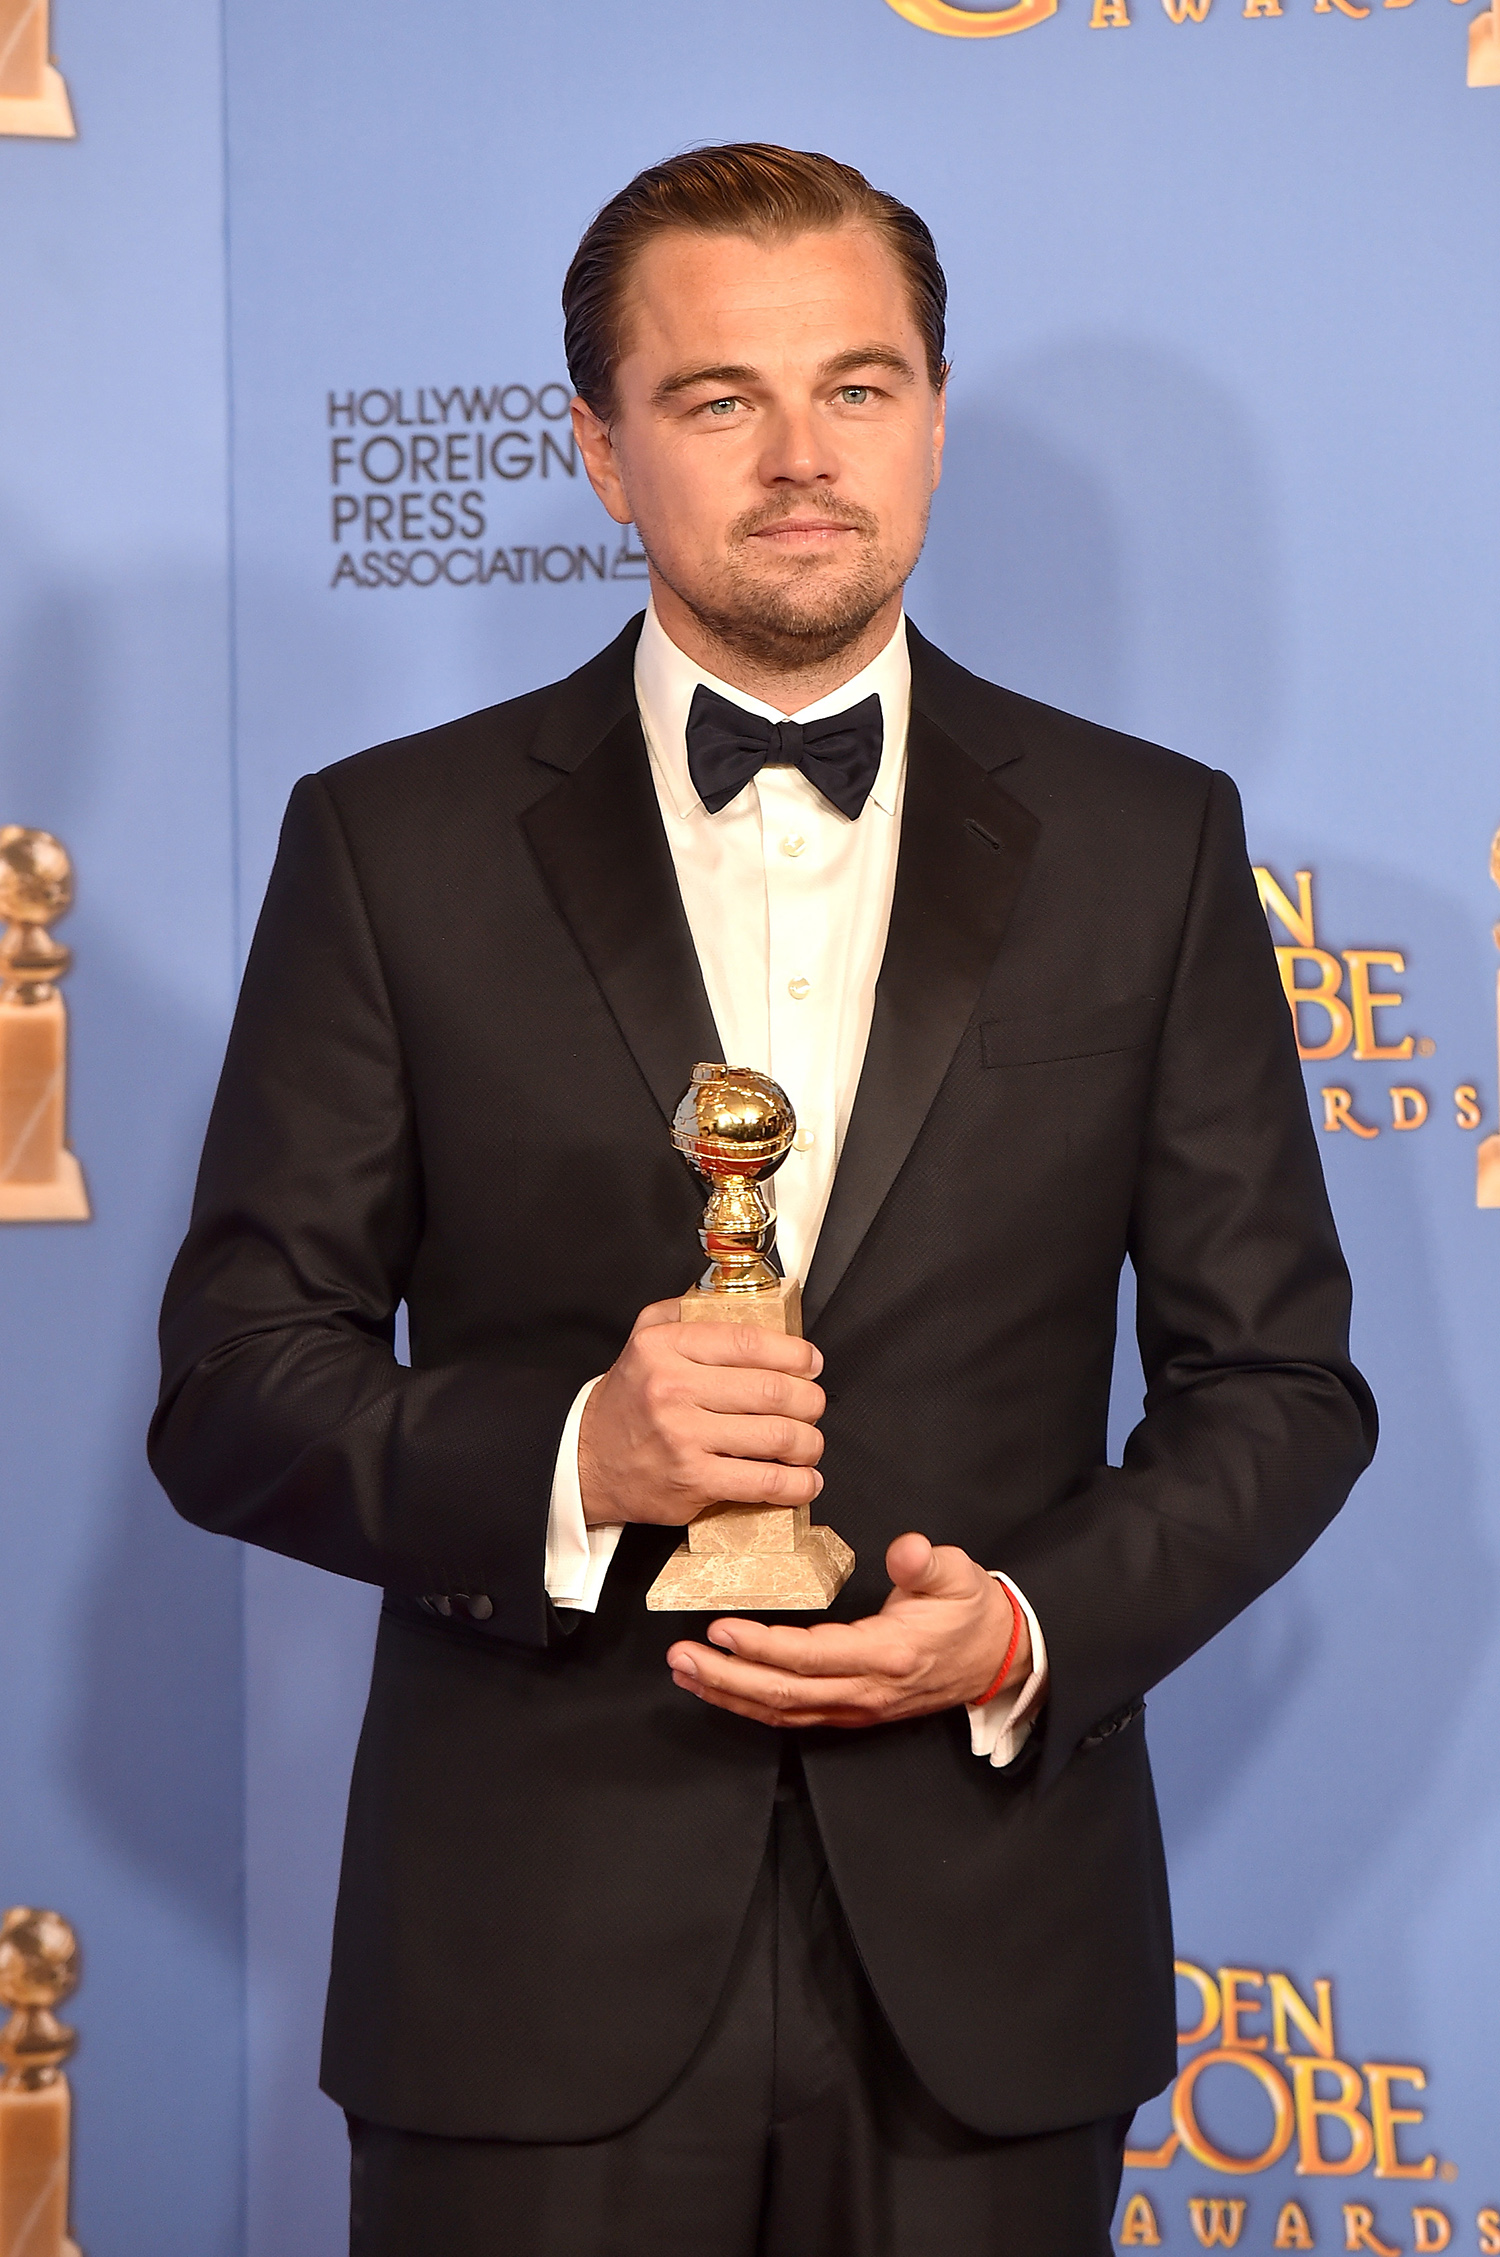 BEVERLY HILLS, CA - JANUARY 10: Actor Leonardo DiCaprio, winner of Best Performance in a Motion Picture - Drama for 'The Revenant,' poses in the press room during the 73rd Annual Golden Globe Awards held at the Beverly Hilton Hotel on January 10, 2016 in Beverly Hills, California. Kevin Winter/Getty Images/AFP